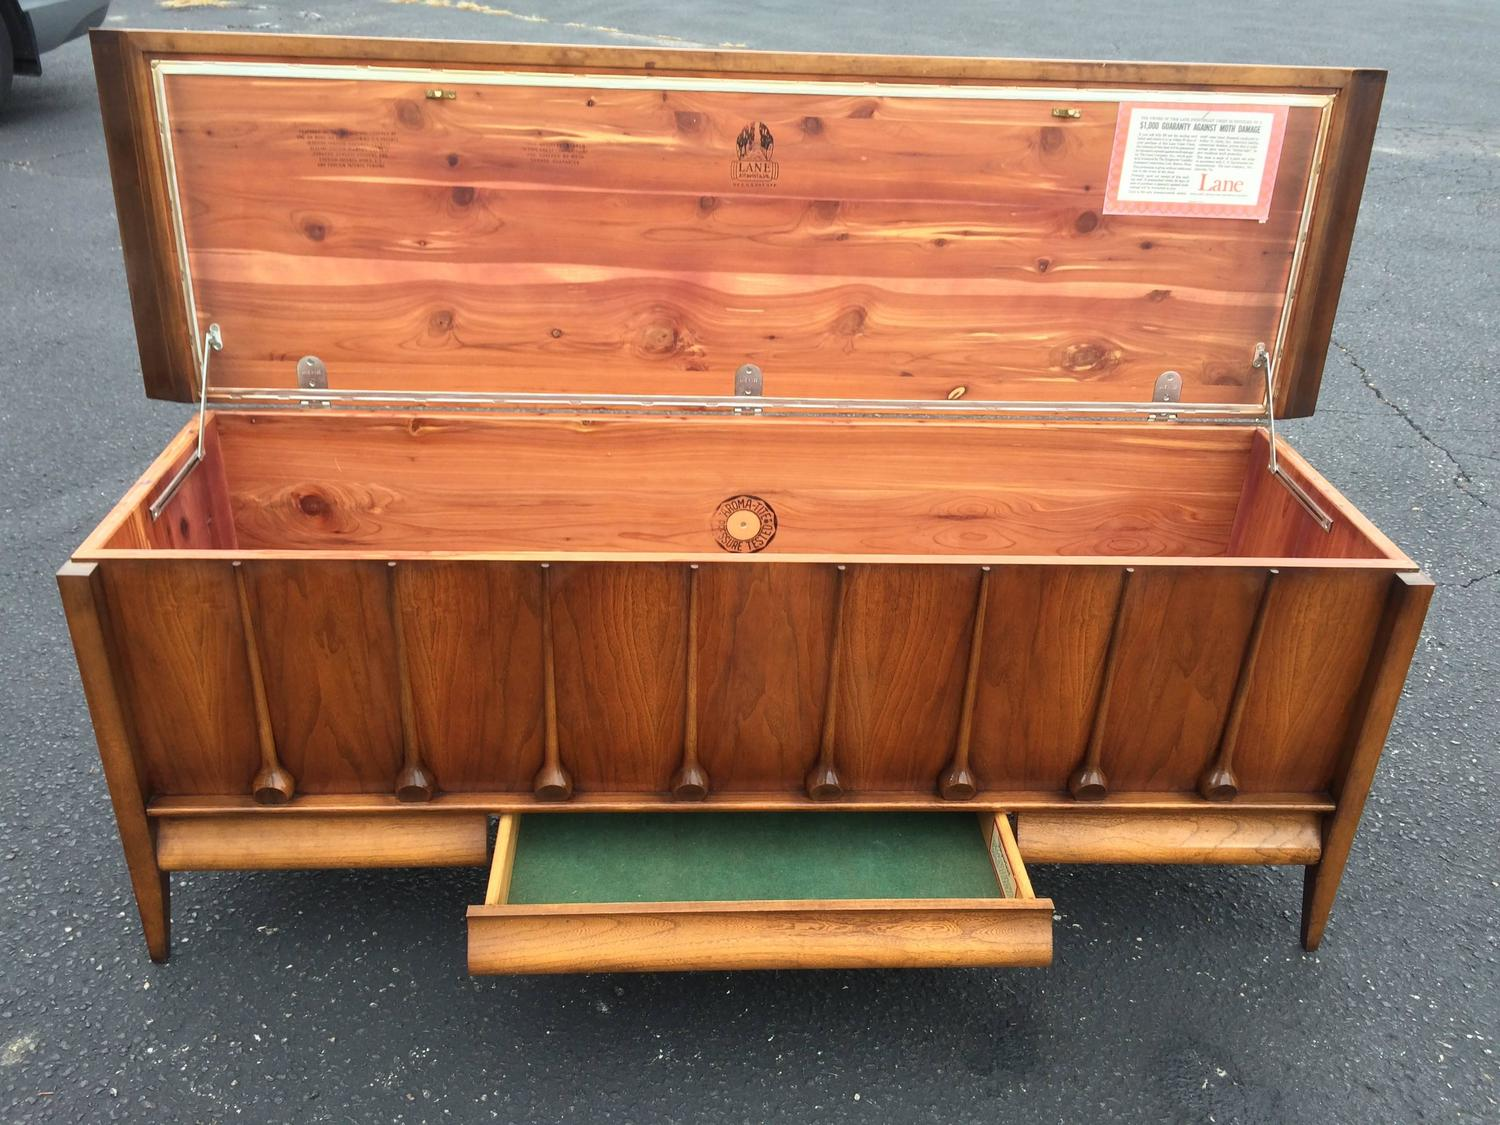 Mid-Century Cedar Chest by Lane For Sale at 1stdibs